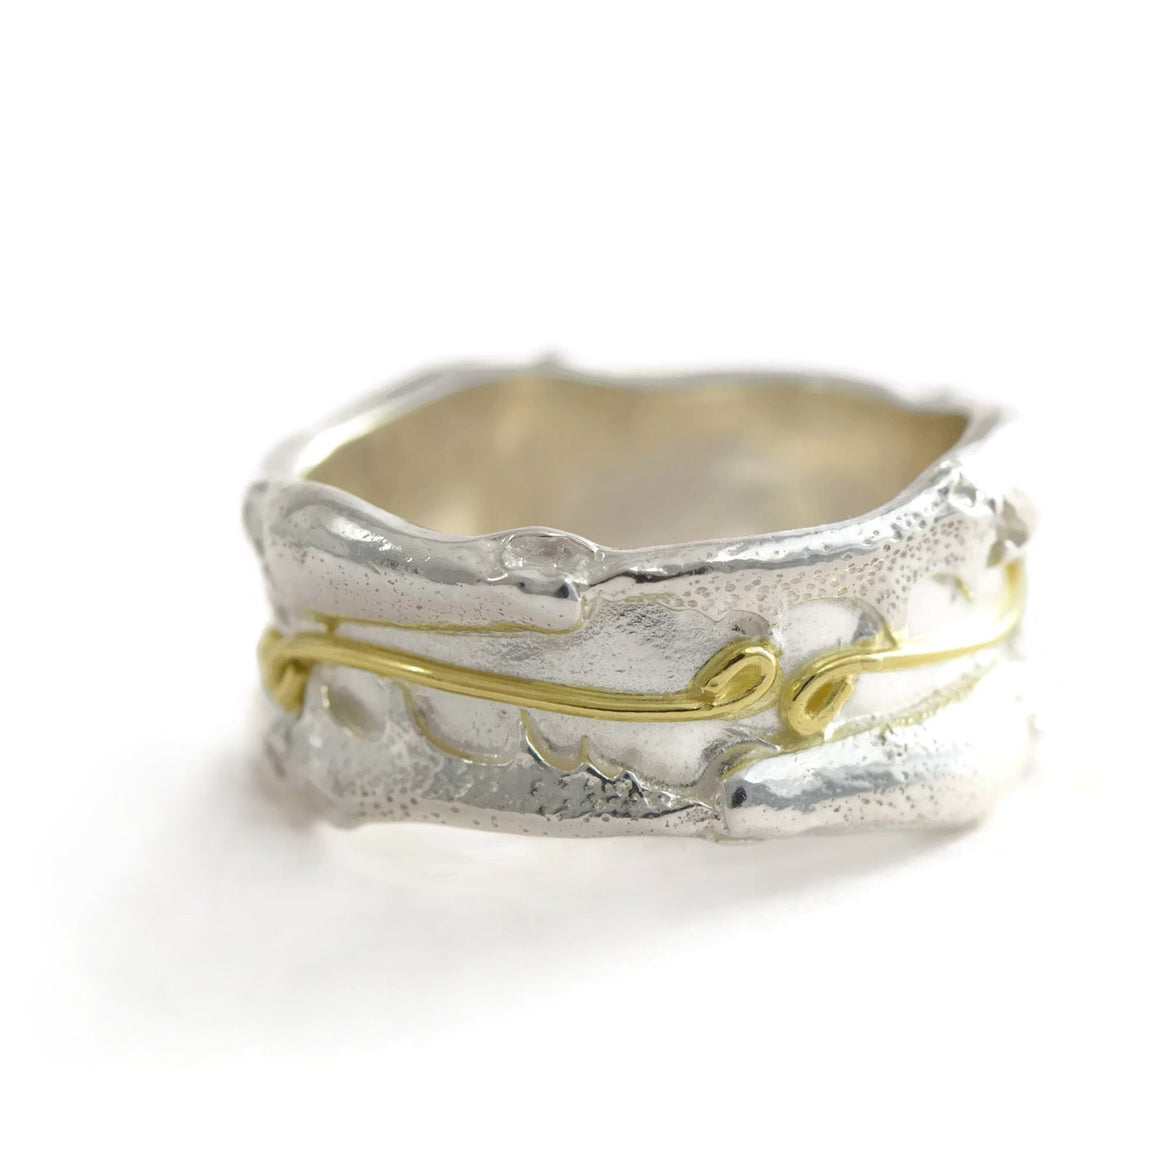 18ct gold and silver textured ring band, decorated with infinity symbols, 10 mm wide.